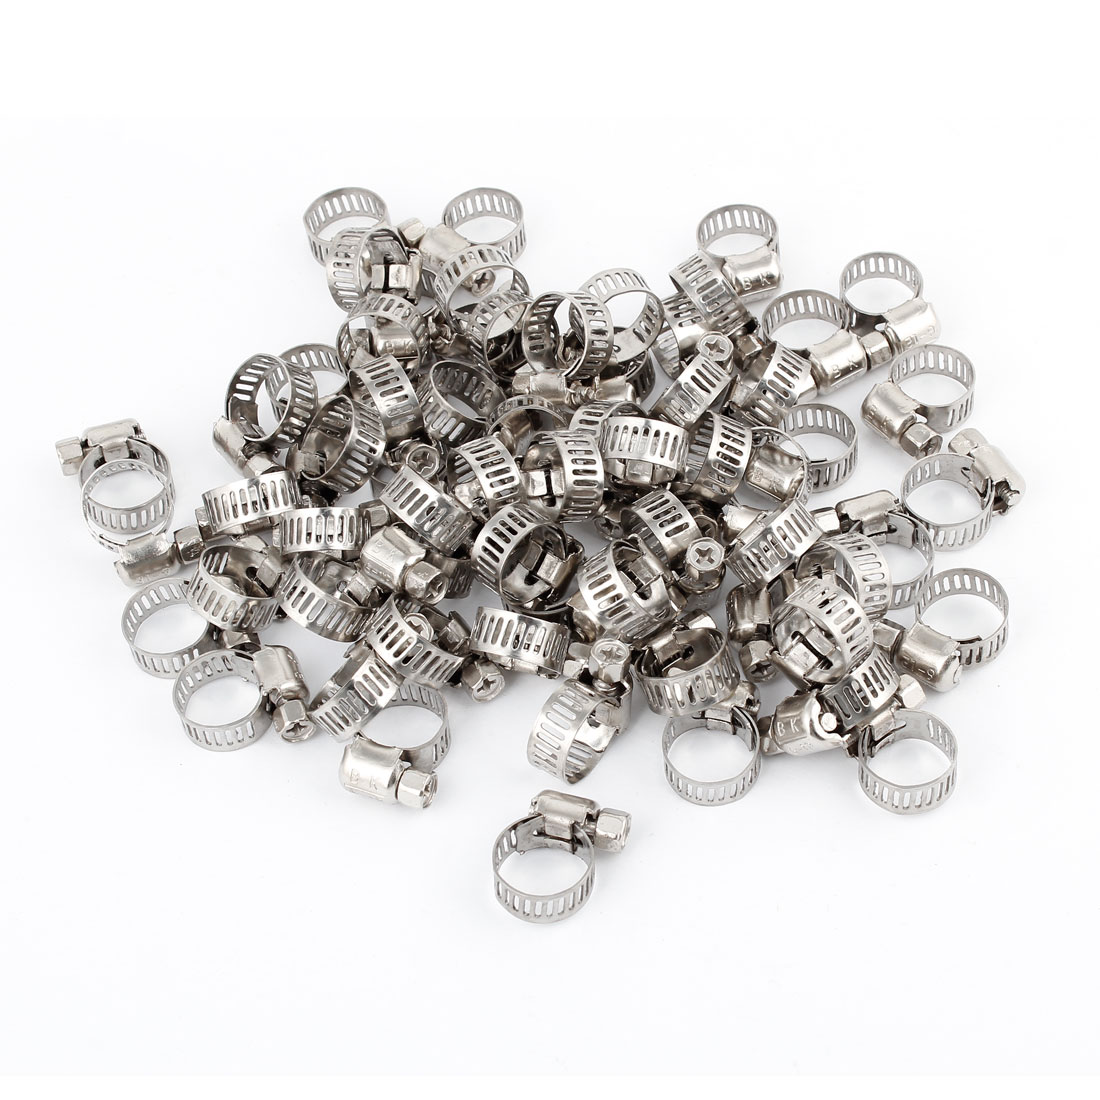 "100 Pcs Silver Tone Metal 0.24""-0.5"" Hoop Ring Worm Drive Hose Clamp Fastener 8mm Wide"